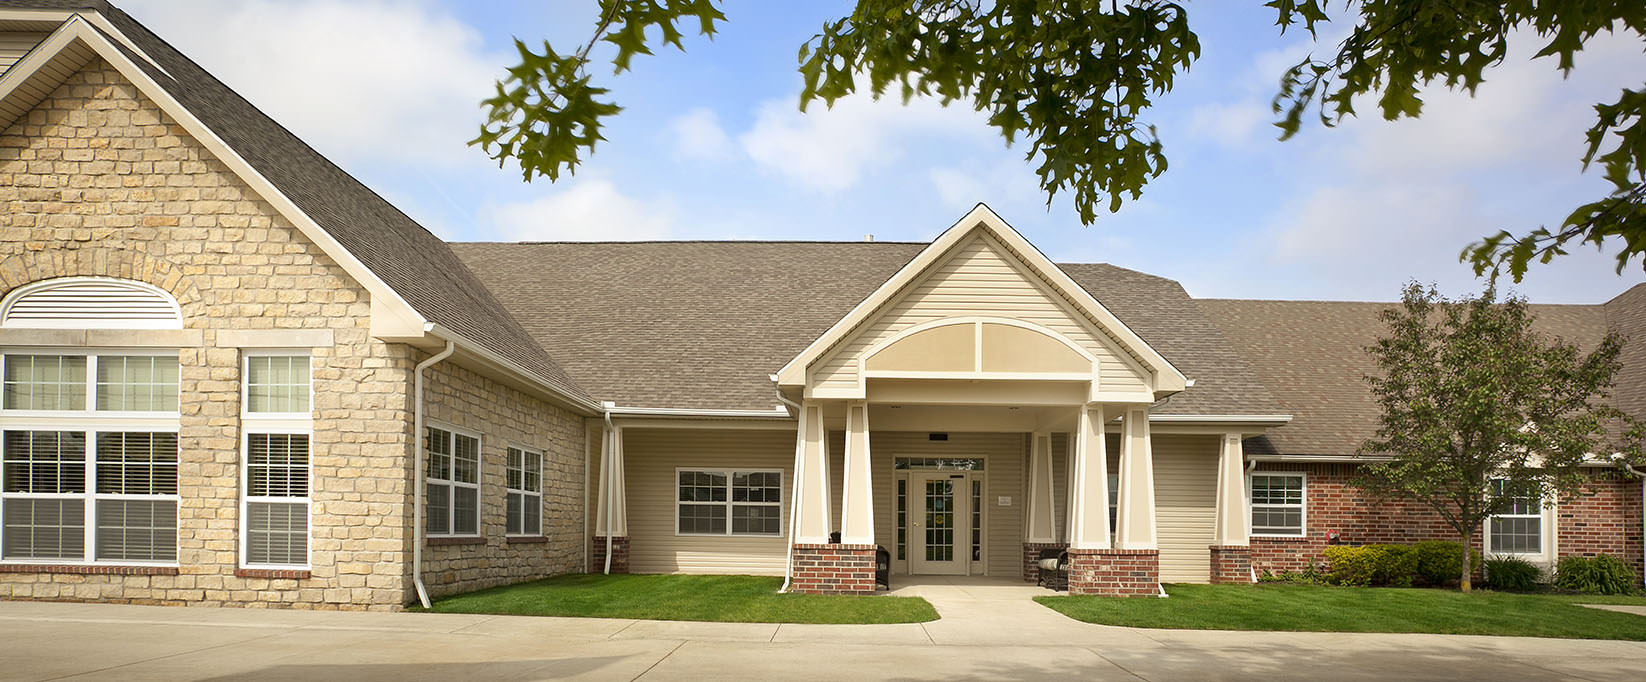 Brookdale Bowling Green - Bowling Green OH | Quality Senior Living